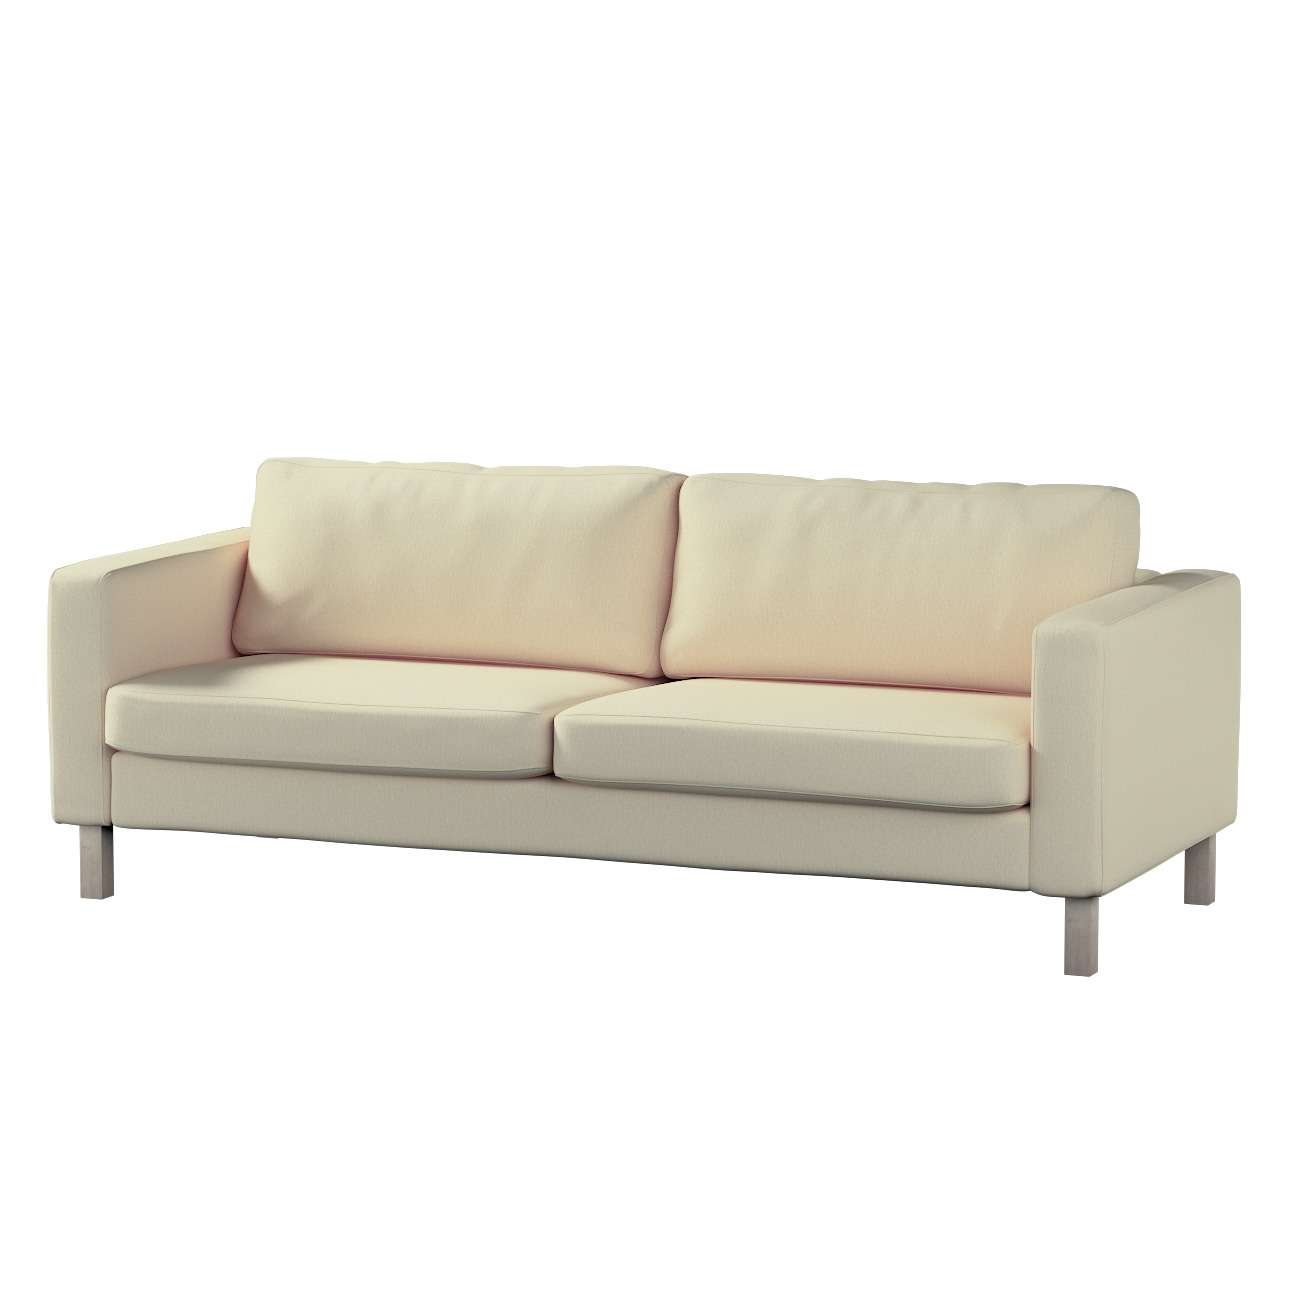 Karlstad 3-seater sofa cover